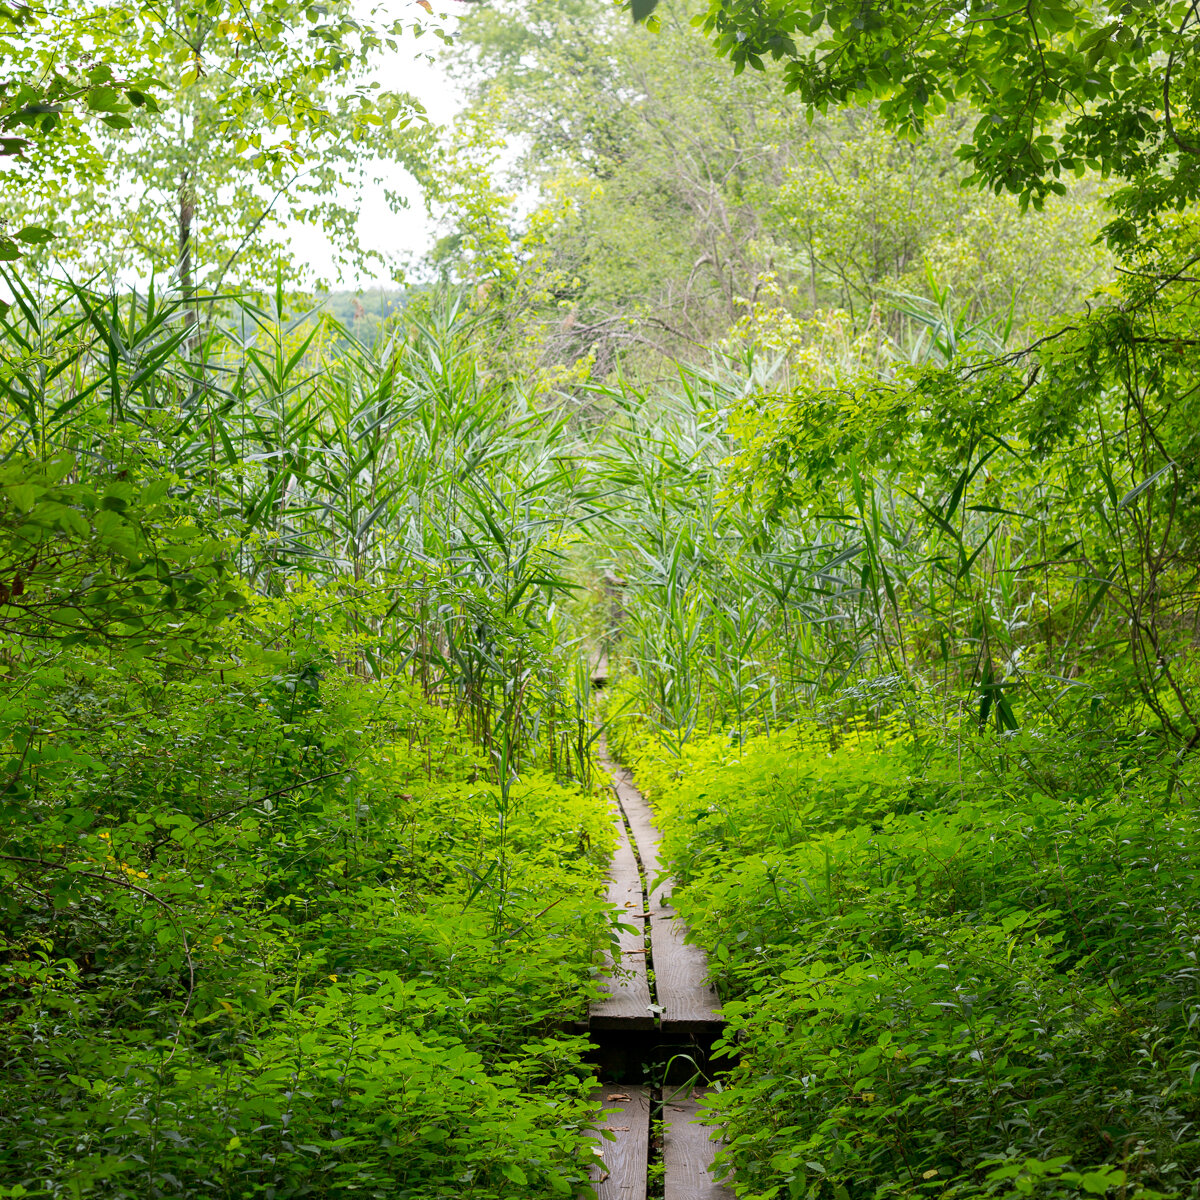 Volunteer on the AT! - The Appalachian National Scenic Trail, Wingdale, NY